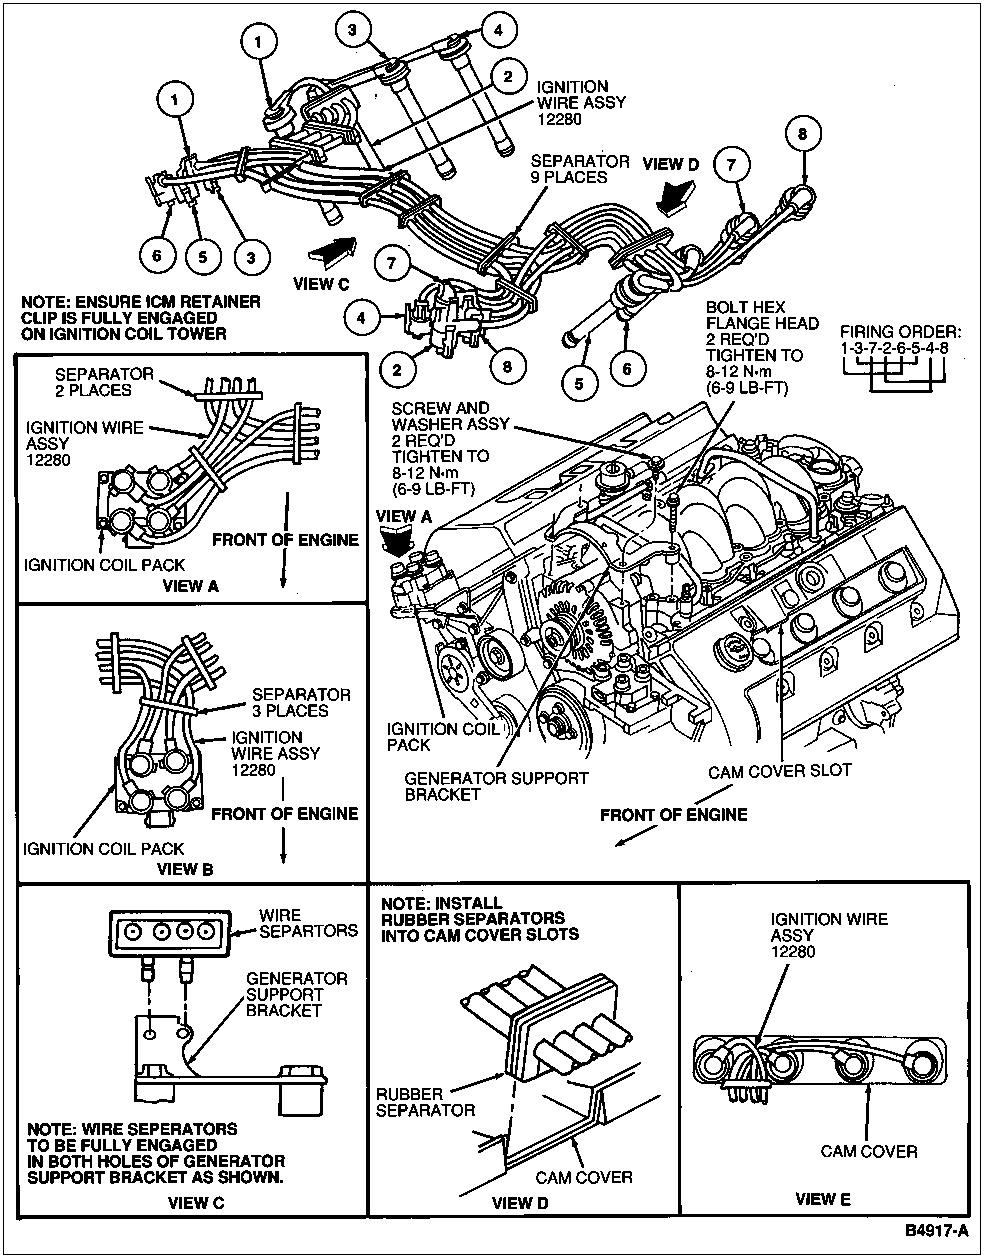 Lincoln Town Car Spark Plug Wiring Diagram Libraries 2007 Ford Five Hundred Fuel Pump Mkx Engine Third Level2007 Library